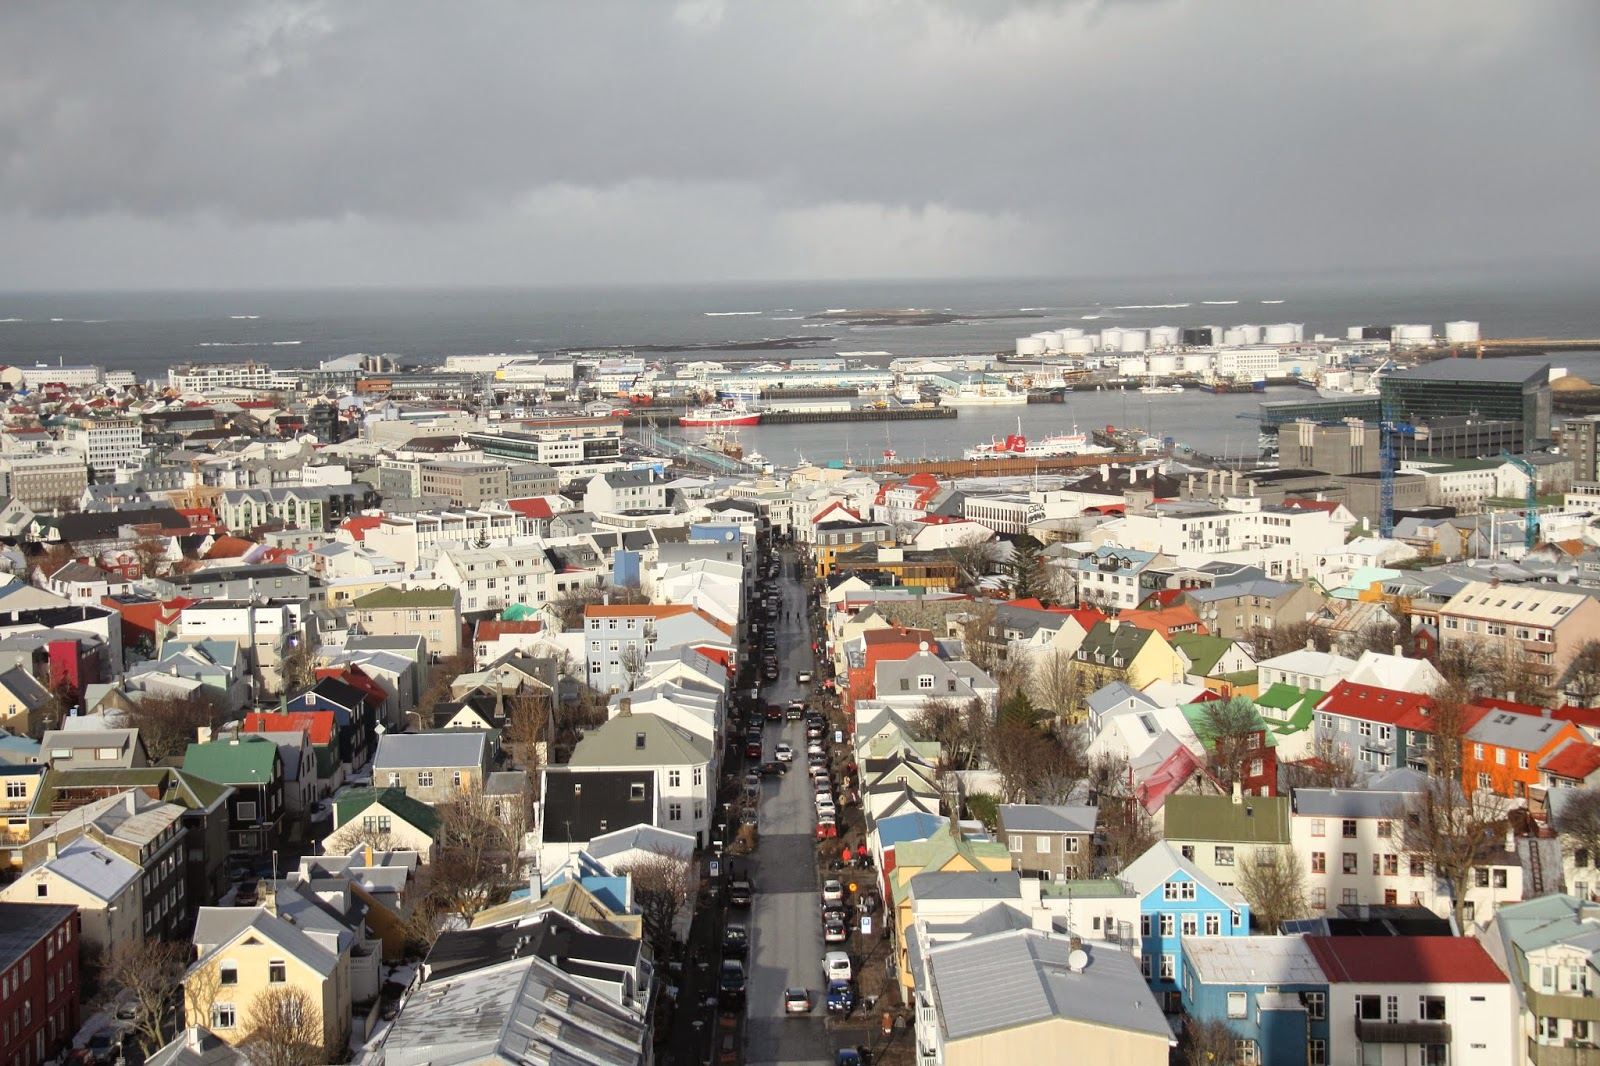 View from the top of Hallgrimskirkja